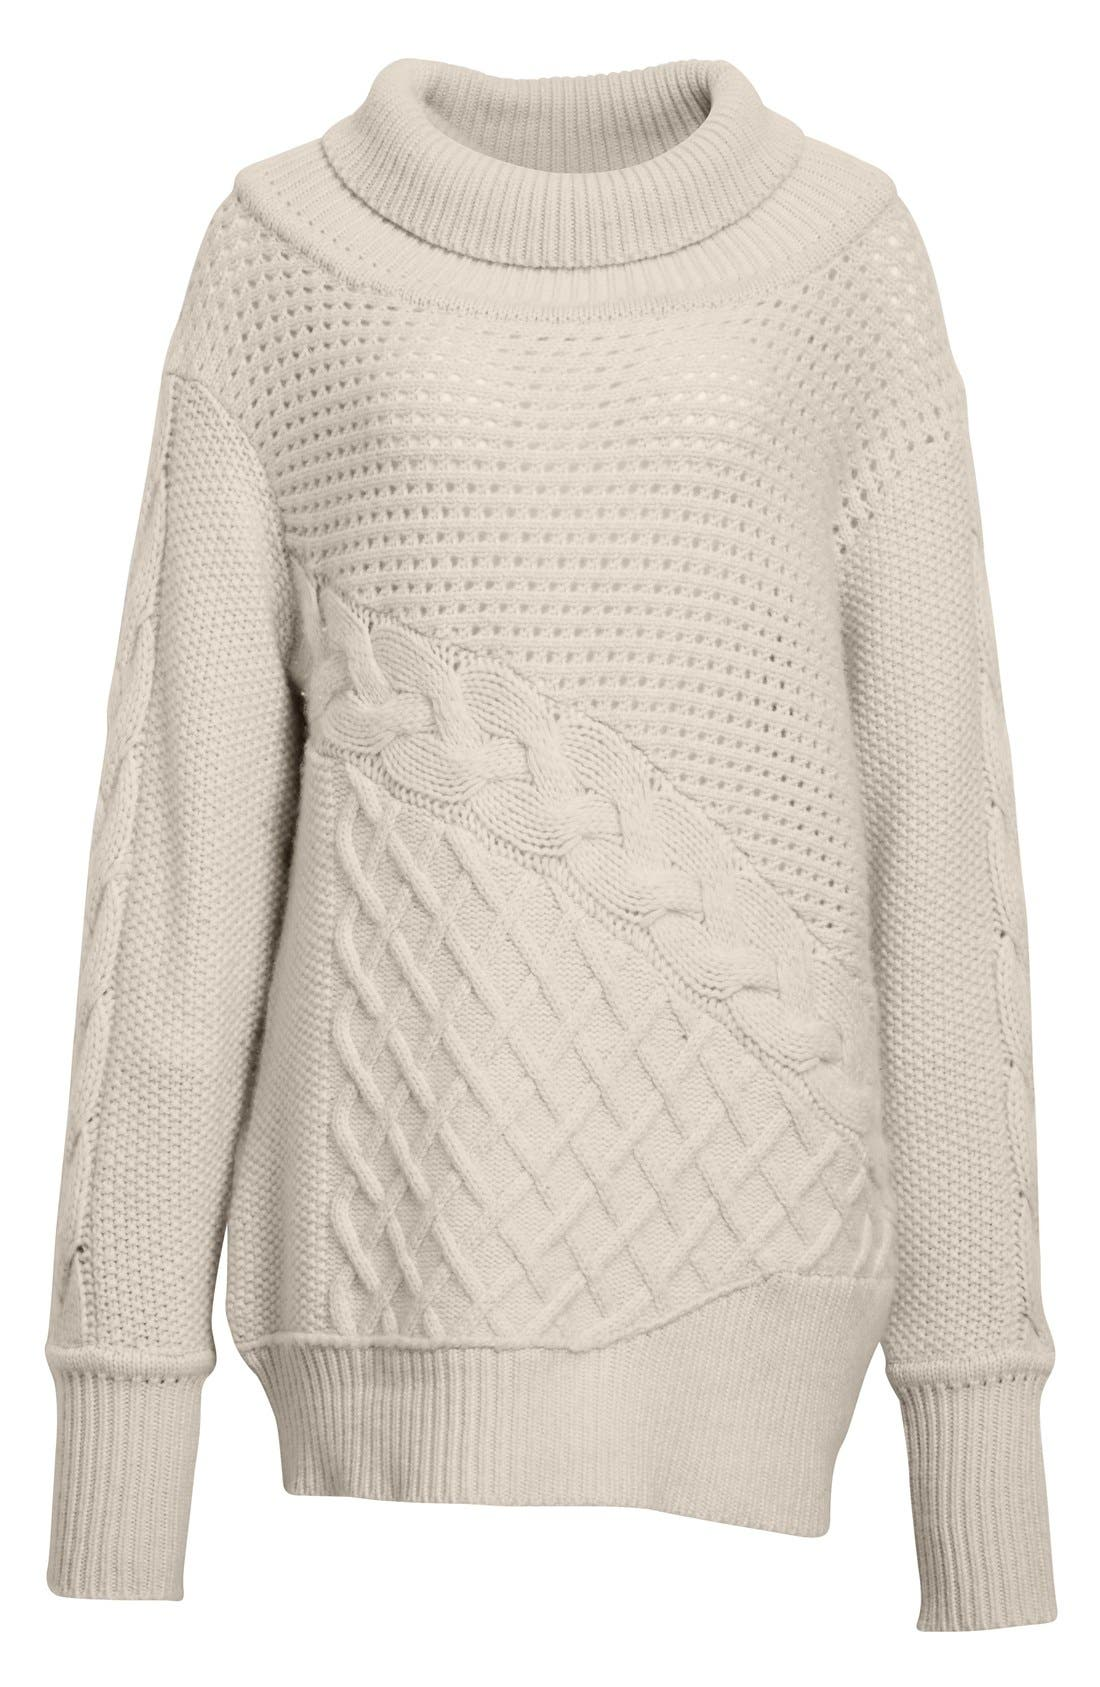 PRABAL GURUNG, Cable Knit Cashmere Sweater, Alternate thumbnail 5, color, 904